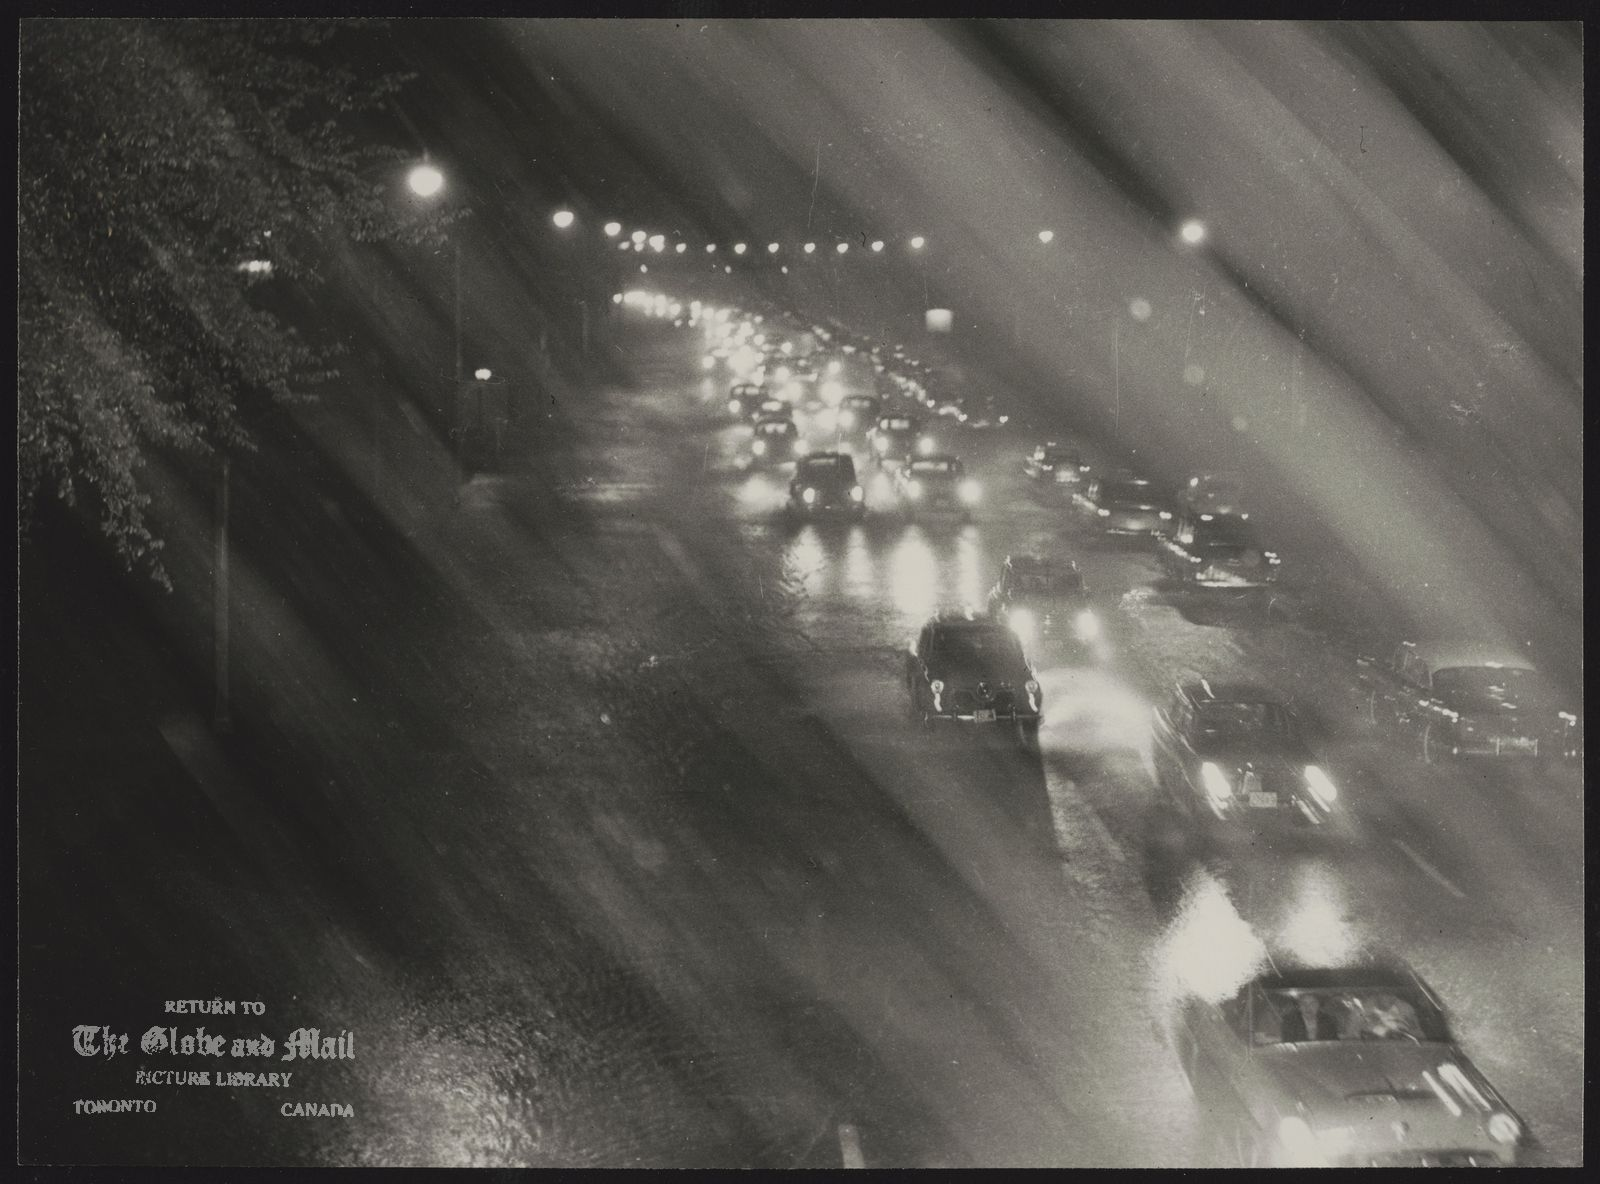 HURRICANE HAZEL Homeward bound motorists on Lake Shore Rd. south of CNE during height of downpour, Oct. 15, 1954. [HURRICANE HAZEL HITS TORONTO -- Homeward bound motorists are packed in solid, sodden lines on Lake Shore Road, south of the CNE grounds, during height of the downpour on October 15, 1954. Steady rain and strong winds tied up traffic in nearly every section of the city. This photo was taken from a Bailey Bridge spanning the highway. Hurricane Hazel pounded the city of Toronto with 110 km/hr winds and more than 200 millimetres of rain in less than 24 hours. Thousands were left homeless, and 81 were killed as severe flooding devastated low-lying areas in and around the city. Areas to the west were especially hard hit and property damage was extensive as bridges and streets were washed out and homes washed away. Photo by Richard Cole / For The Globe and Mail (Neg. #54288-2)]